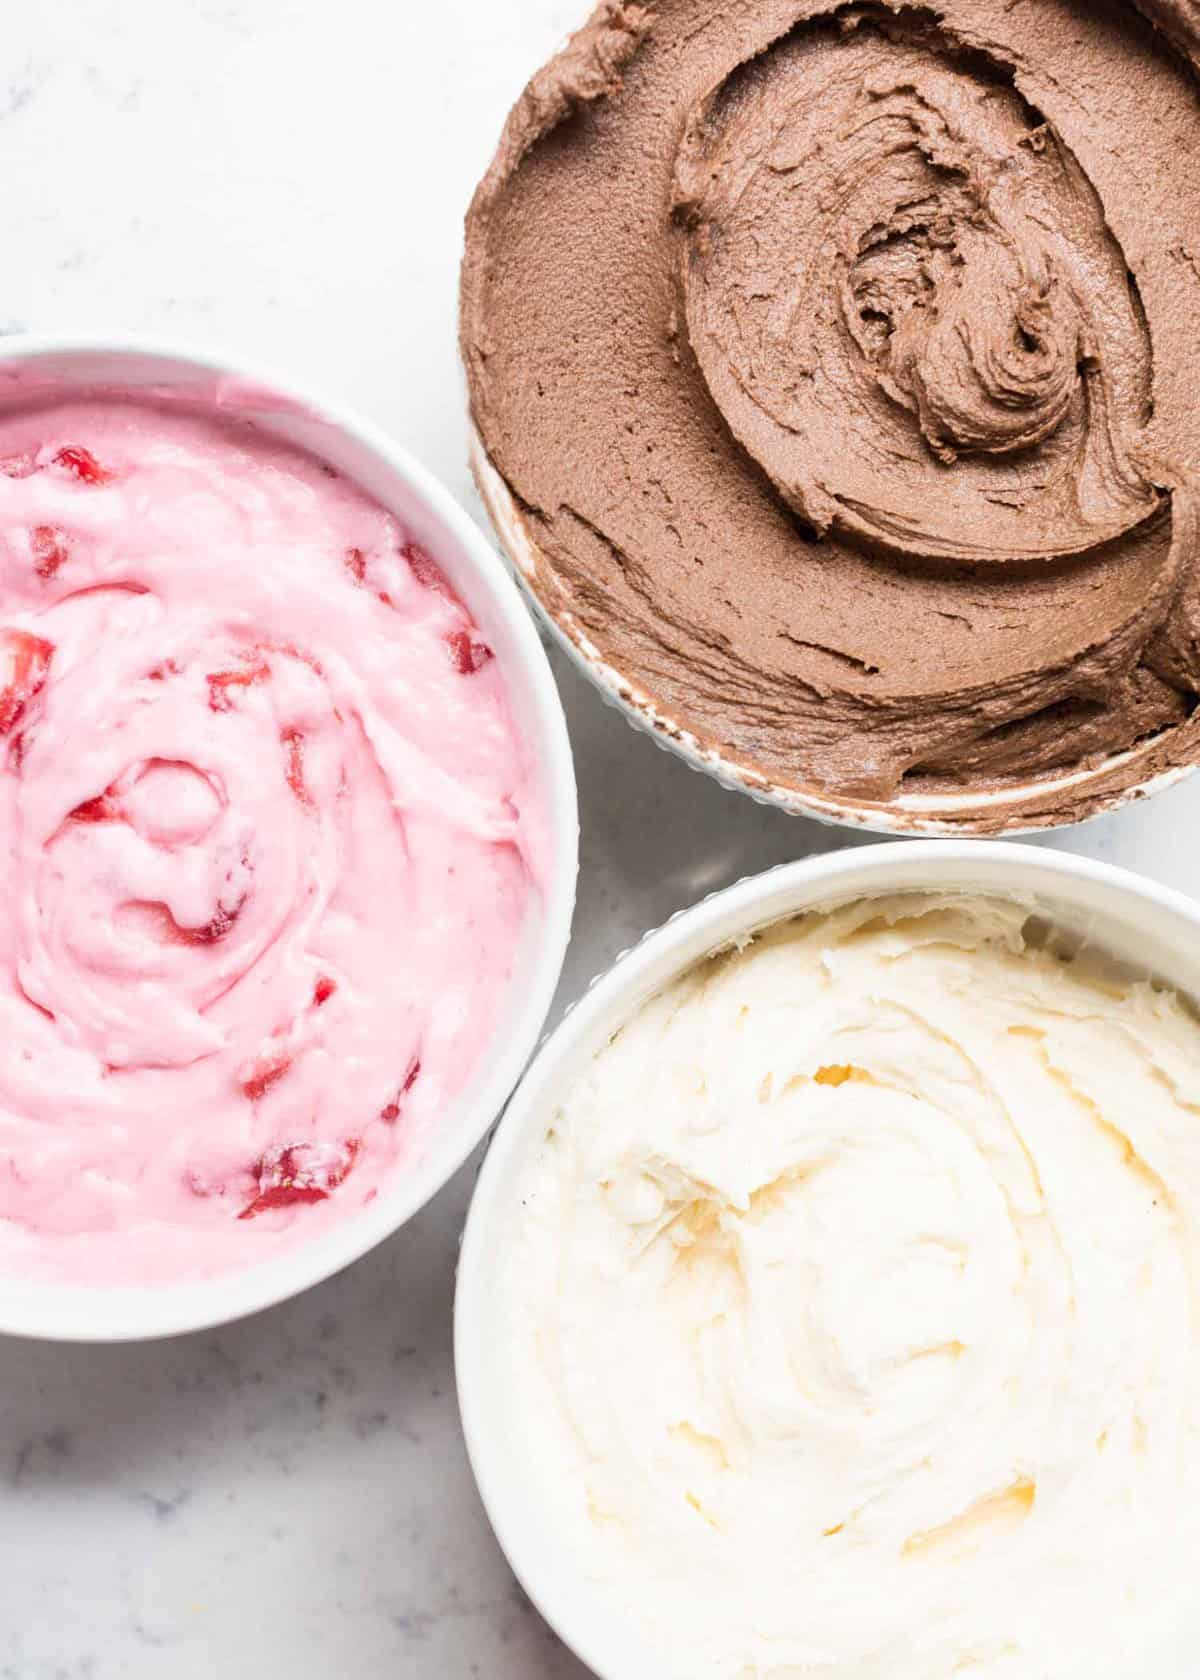 3 bowls with classic, chocolate and strawberry buttercream frosting